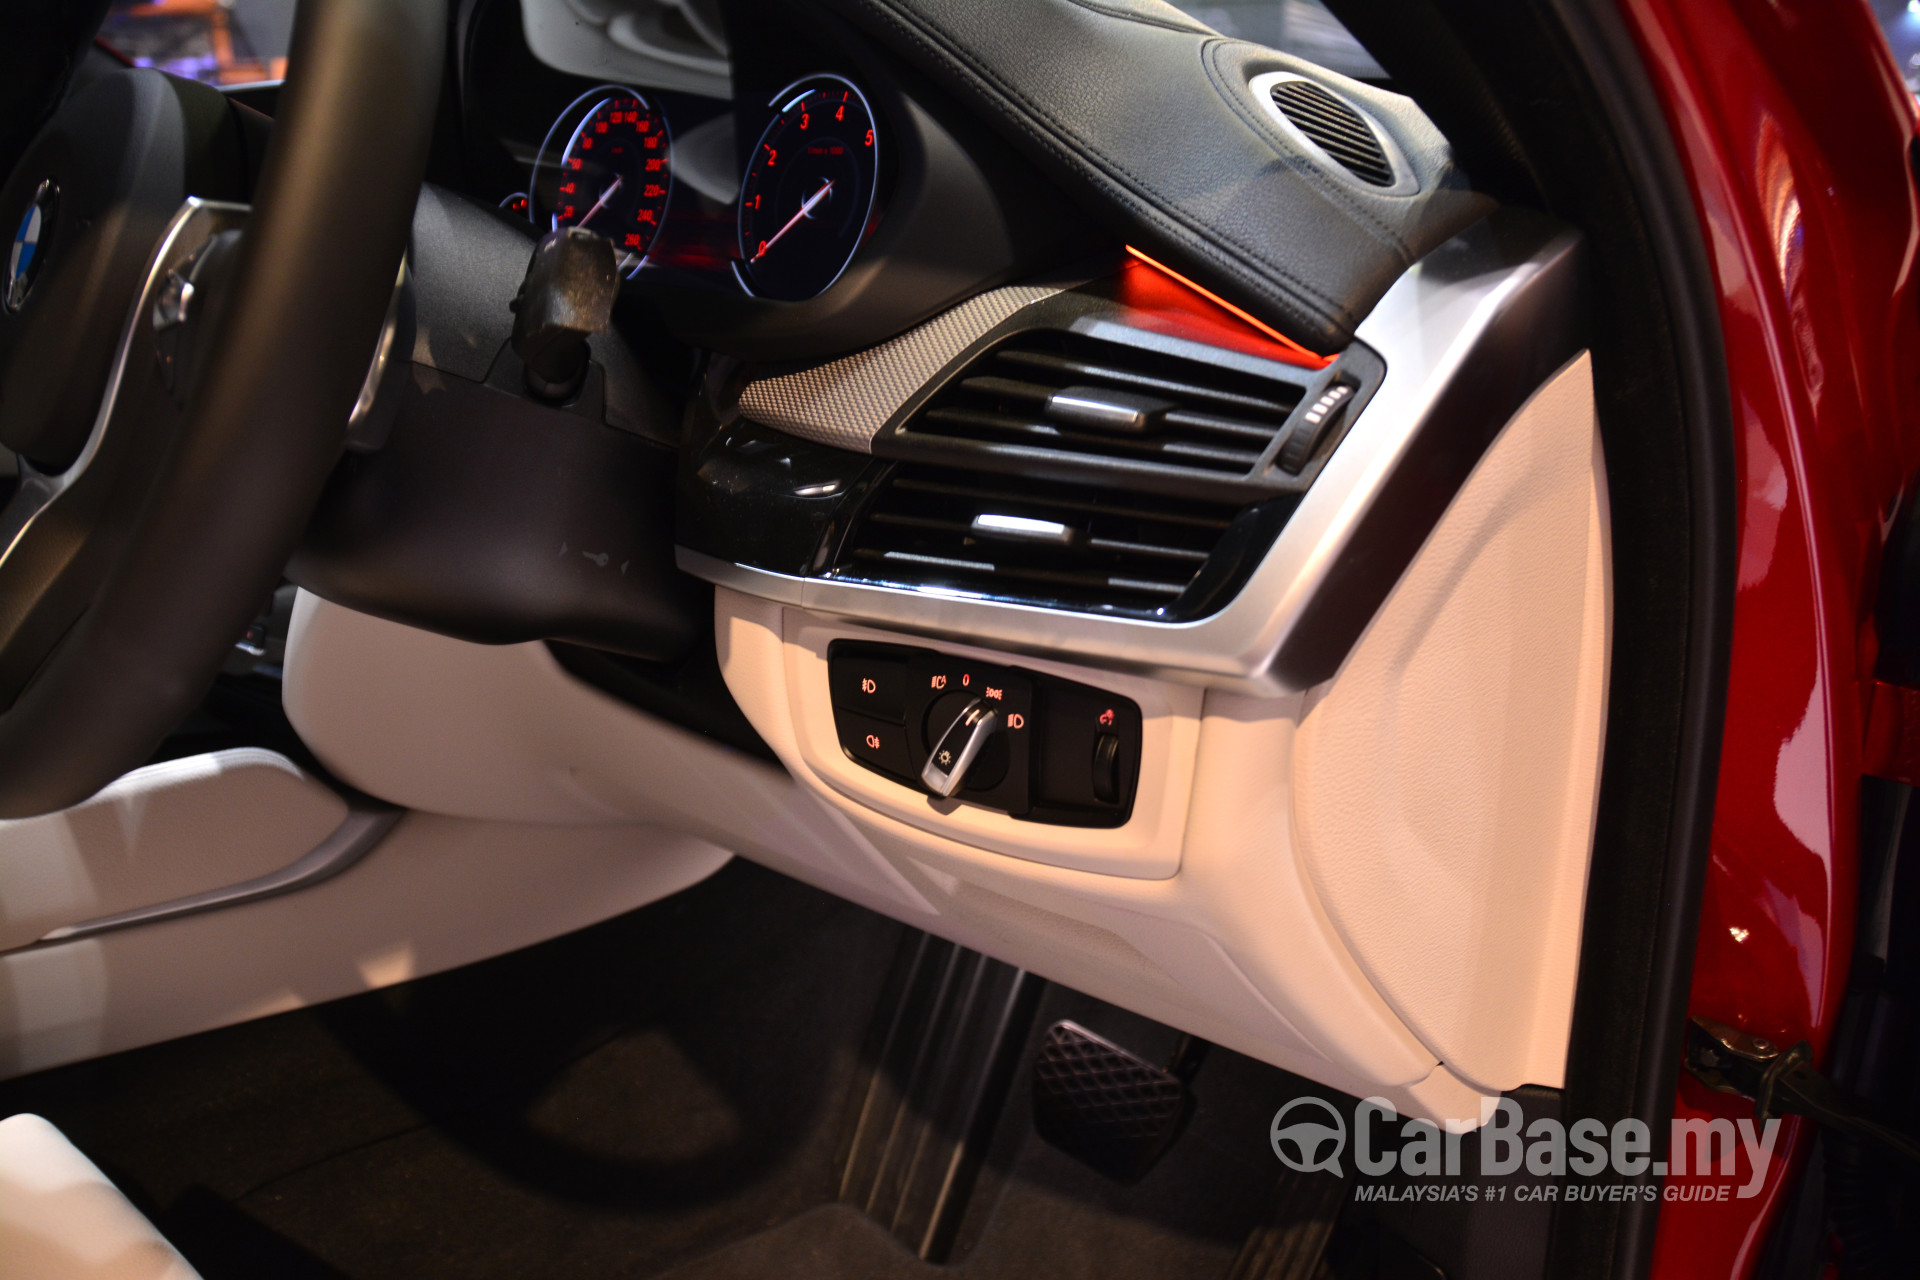 Bmw X6 F16 2015 Interior Image 20866 In Malaysia Reviews Specs